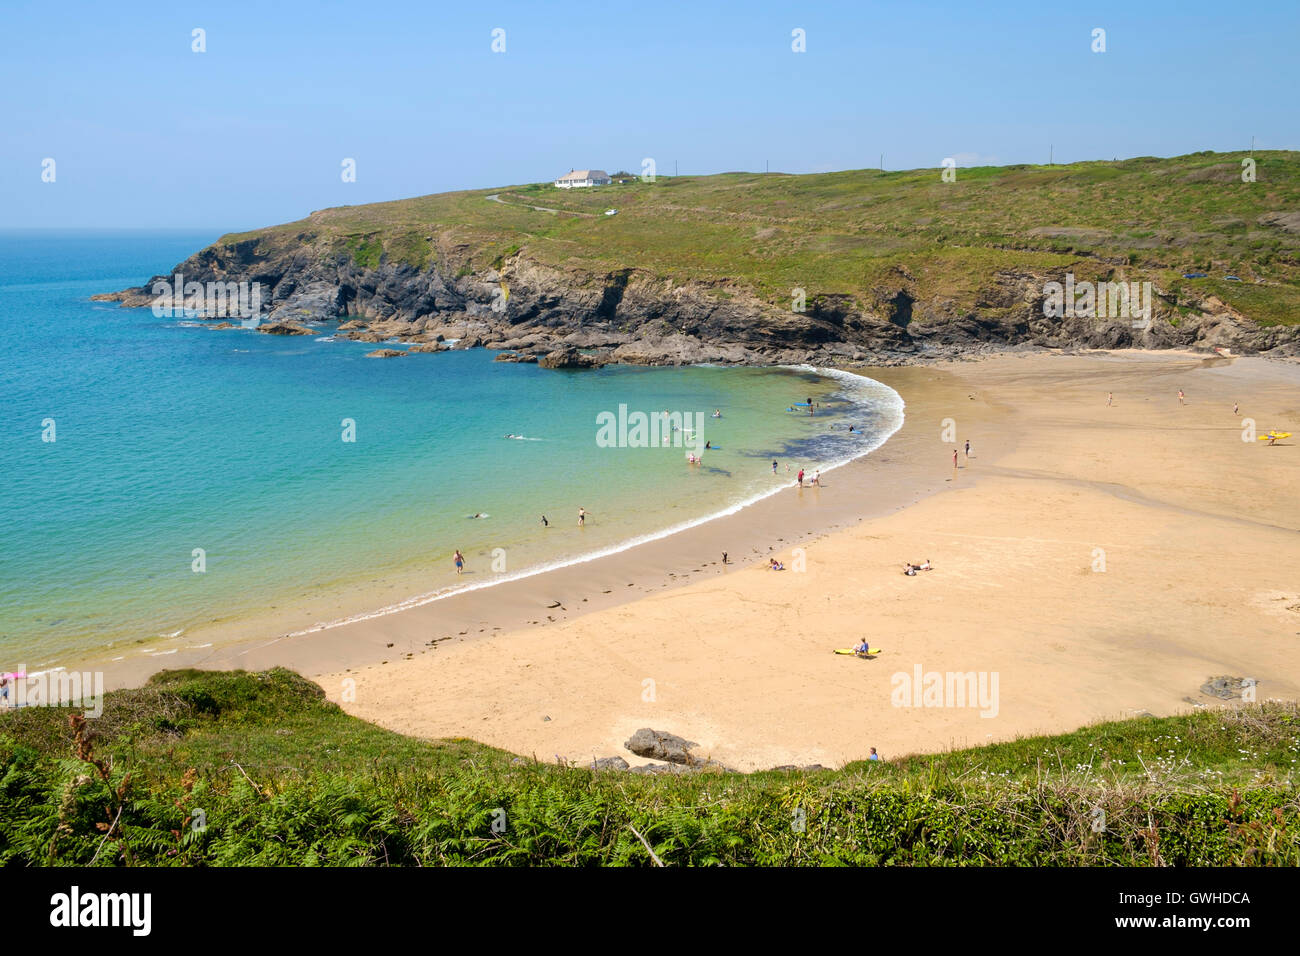 The beach at Poldhu Cove, Mullion, Cornwall, on the Lizard Peninsula, England, UK beaches in summer - Stock Image